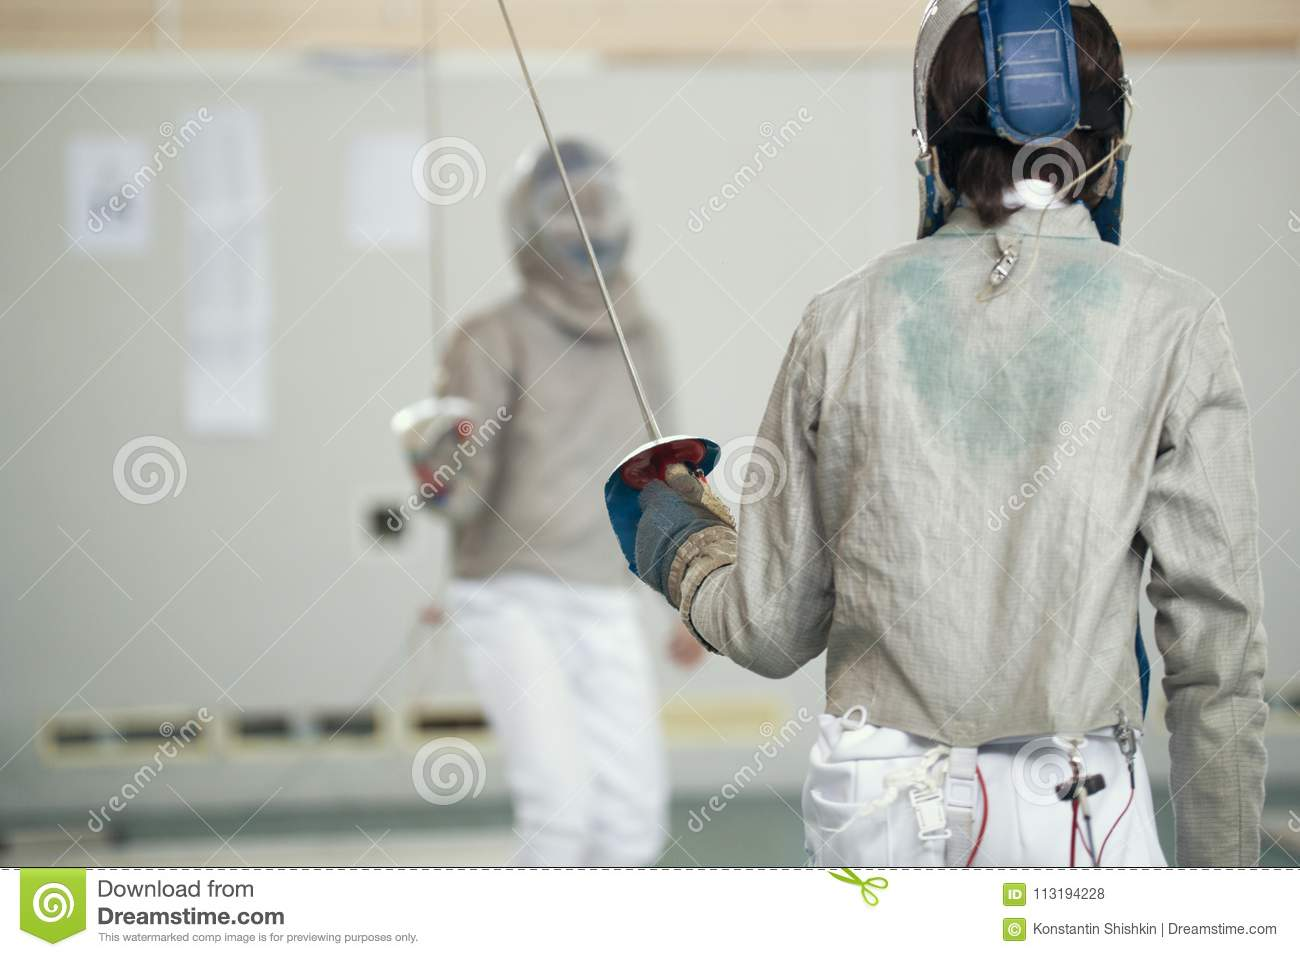 Two teenager fencers in white protective clothes fighting on the fencing tournament